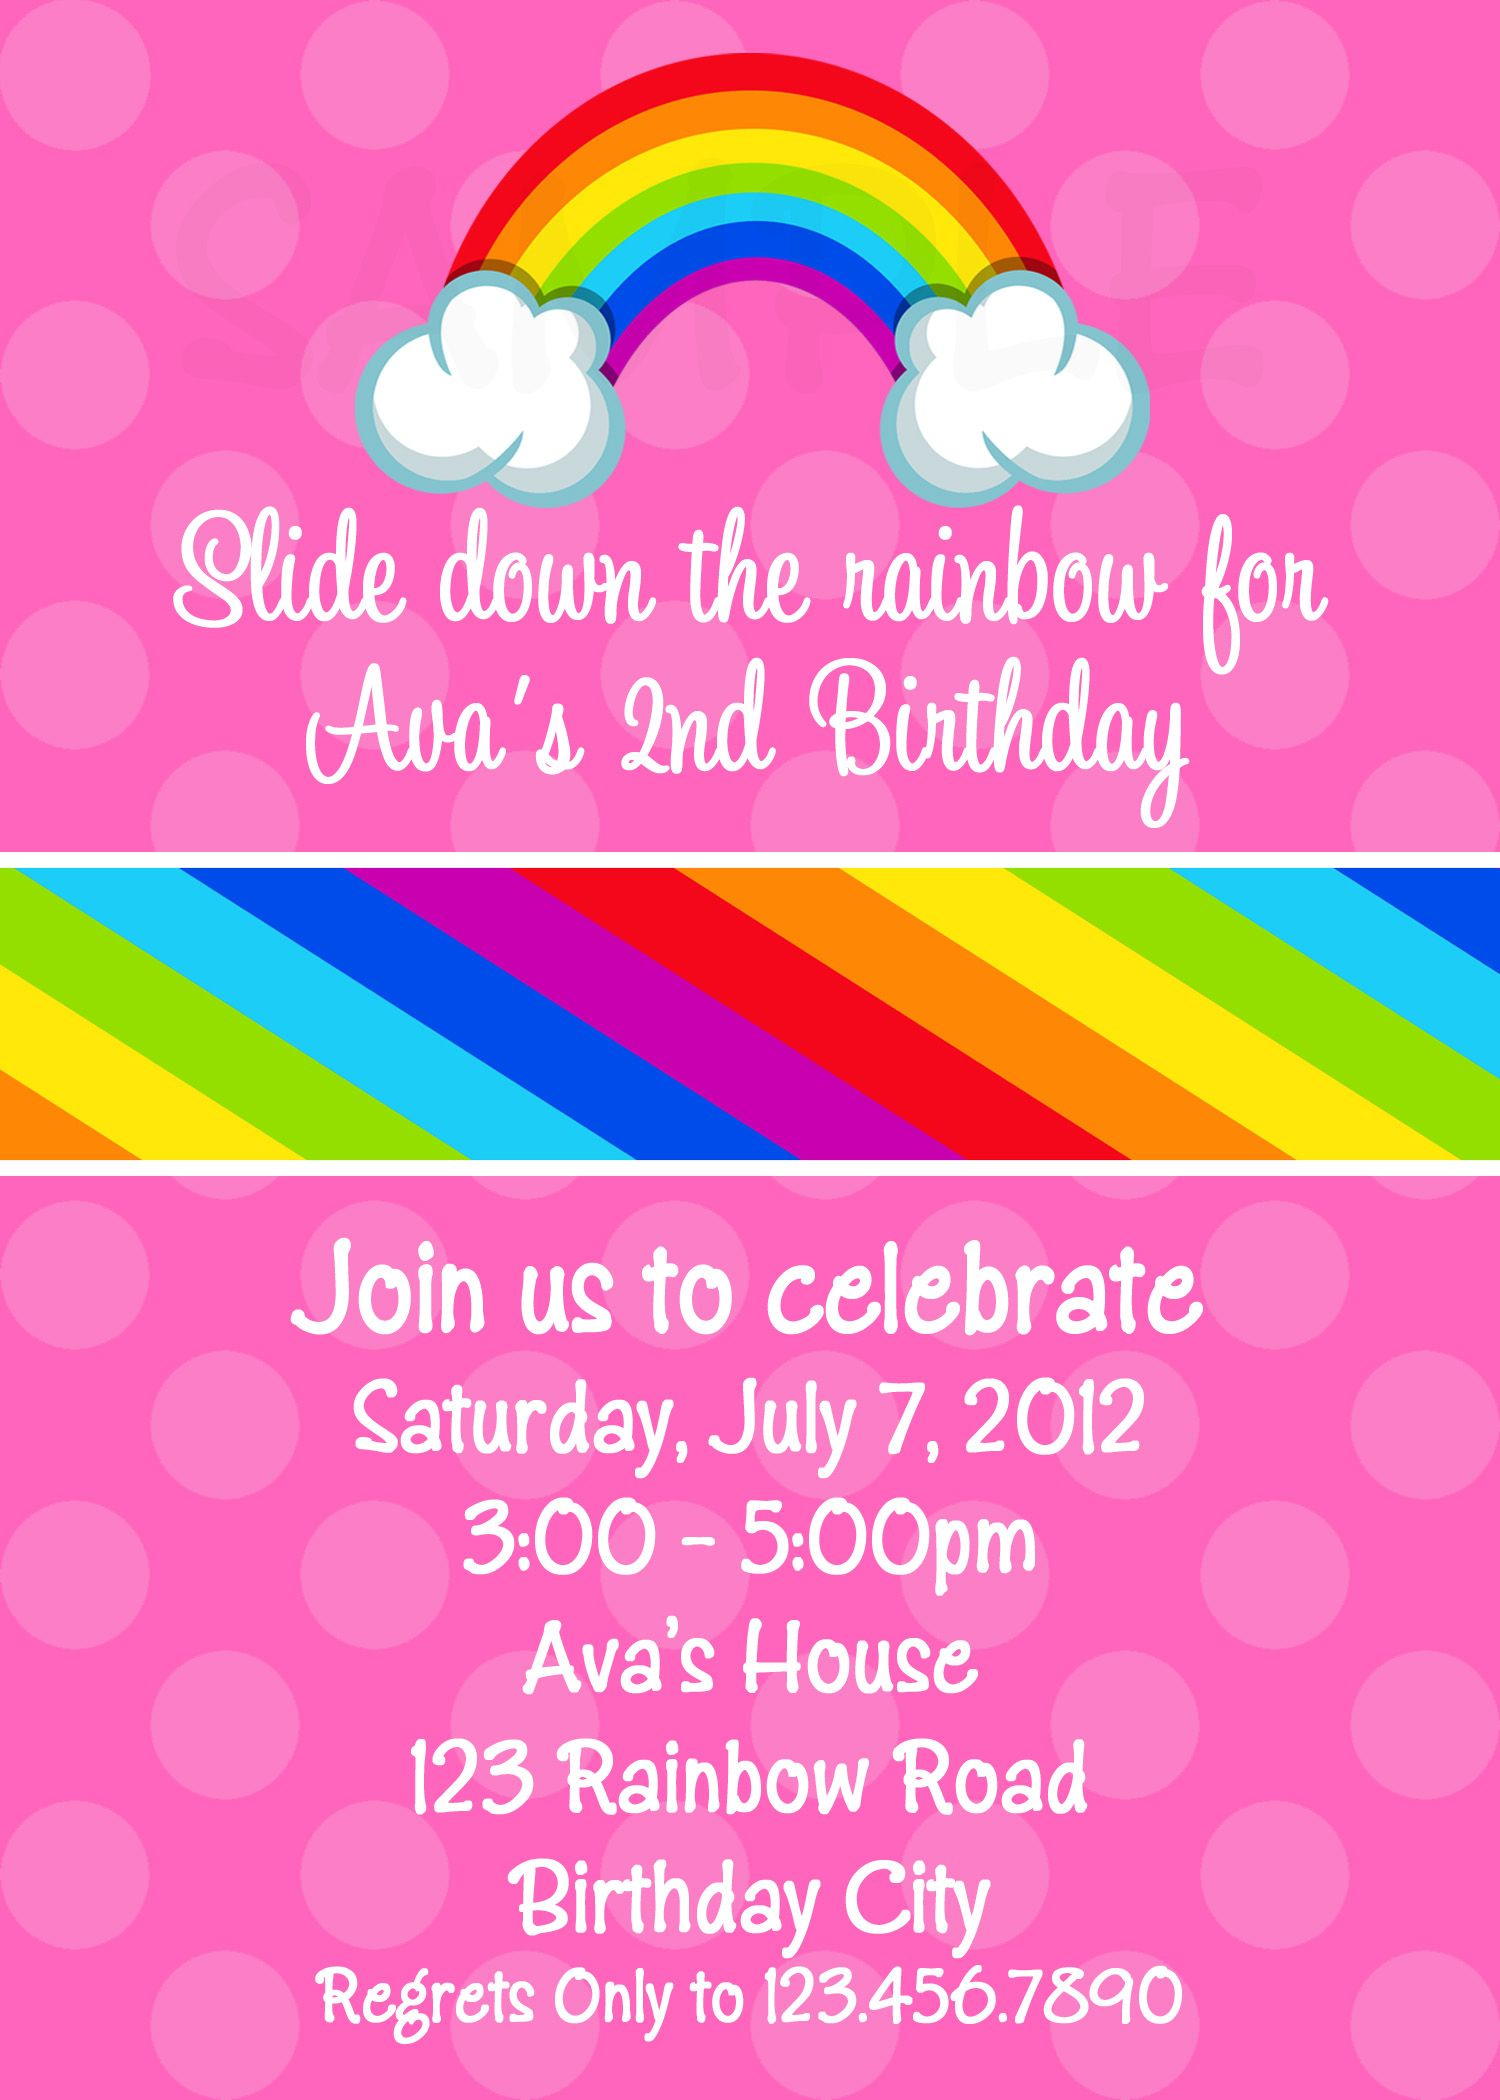 Rainbow Birthday Party Invitation Rainbow birthday invitations